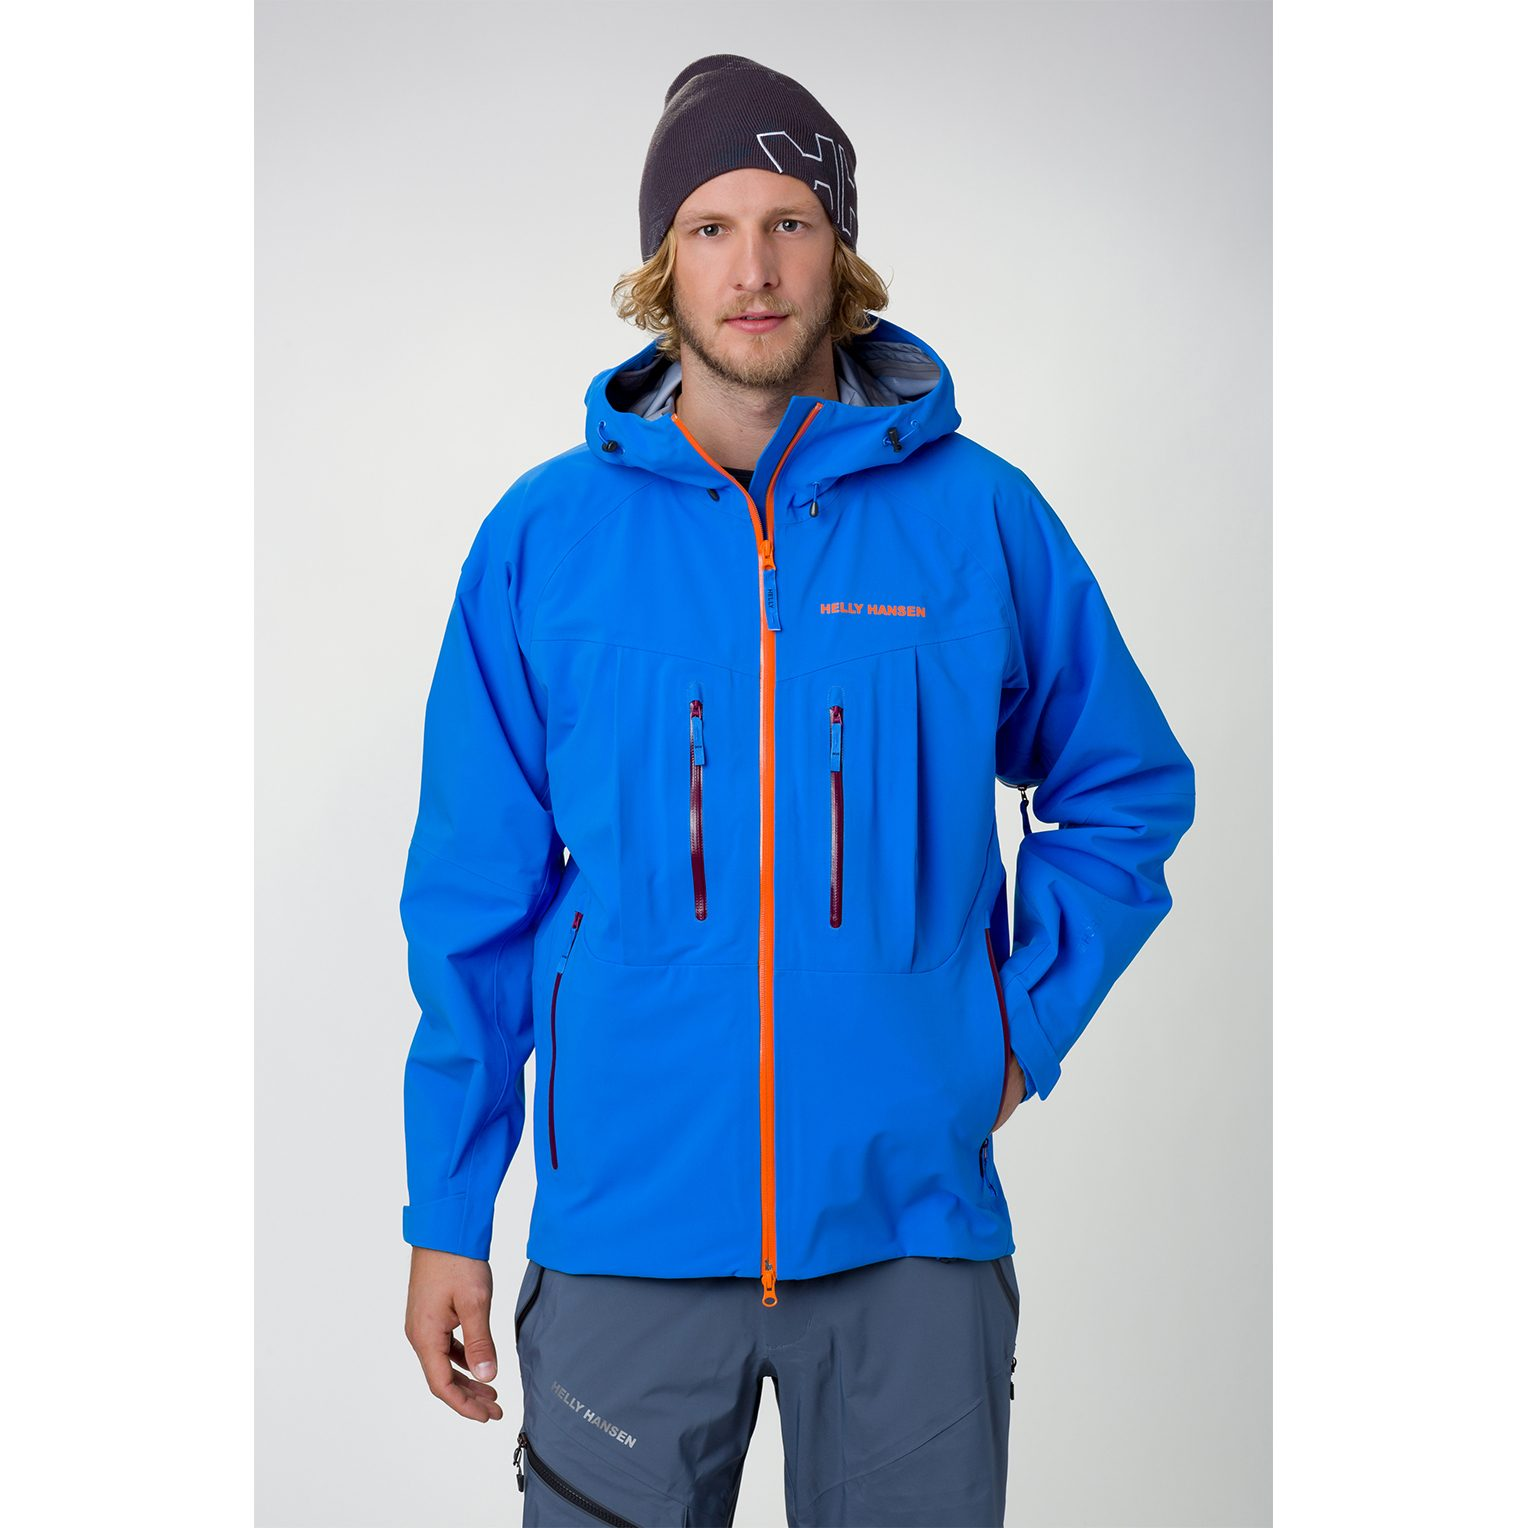 Helly Hansen Verglas Jacket Review